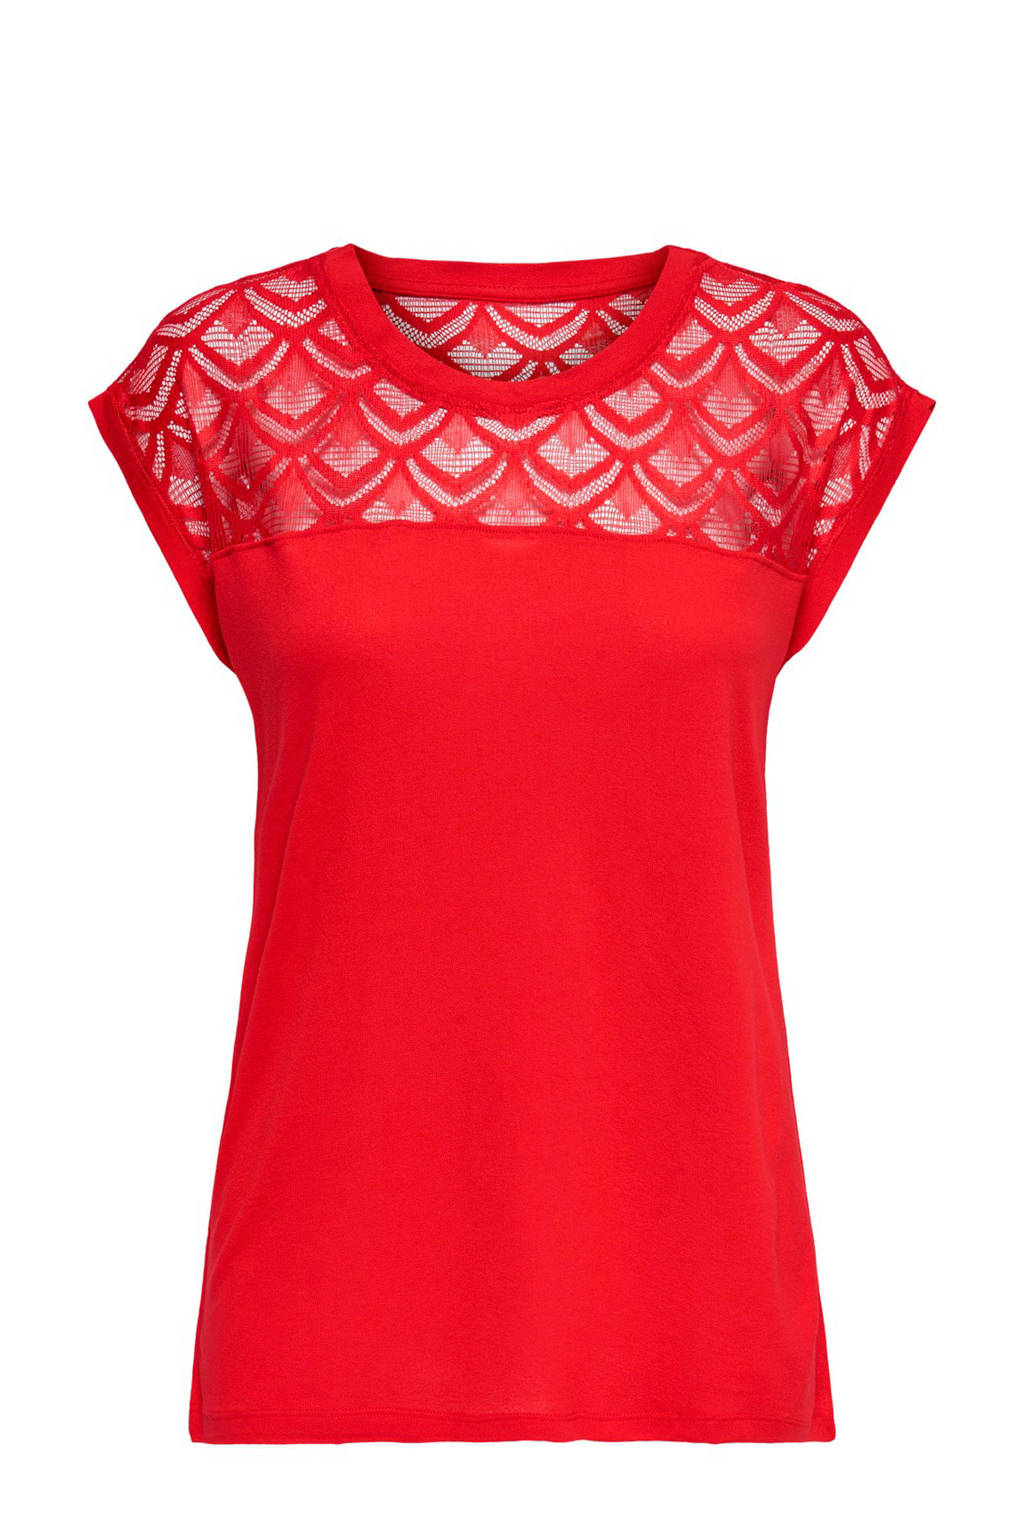 ONLY t-shirt met kant, Rood